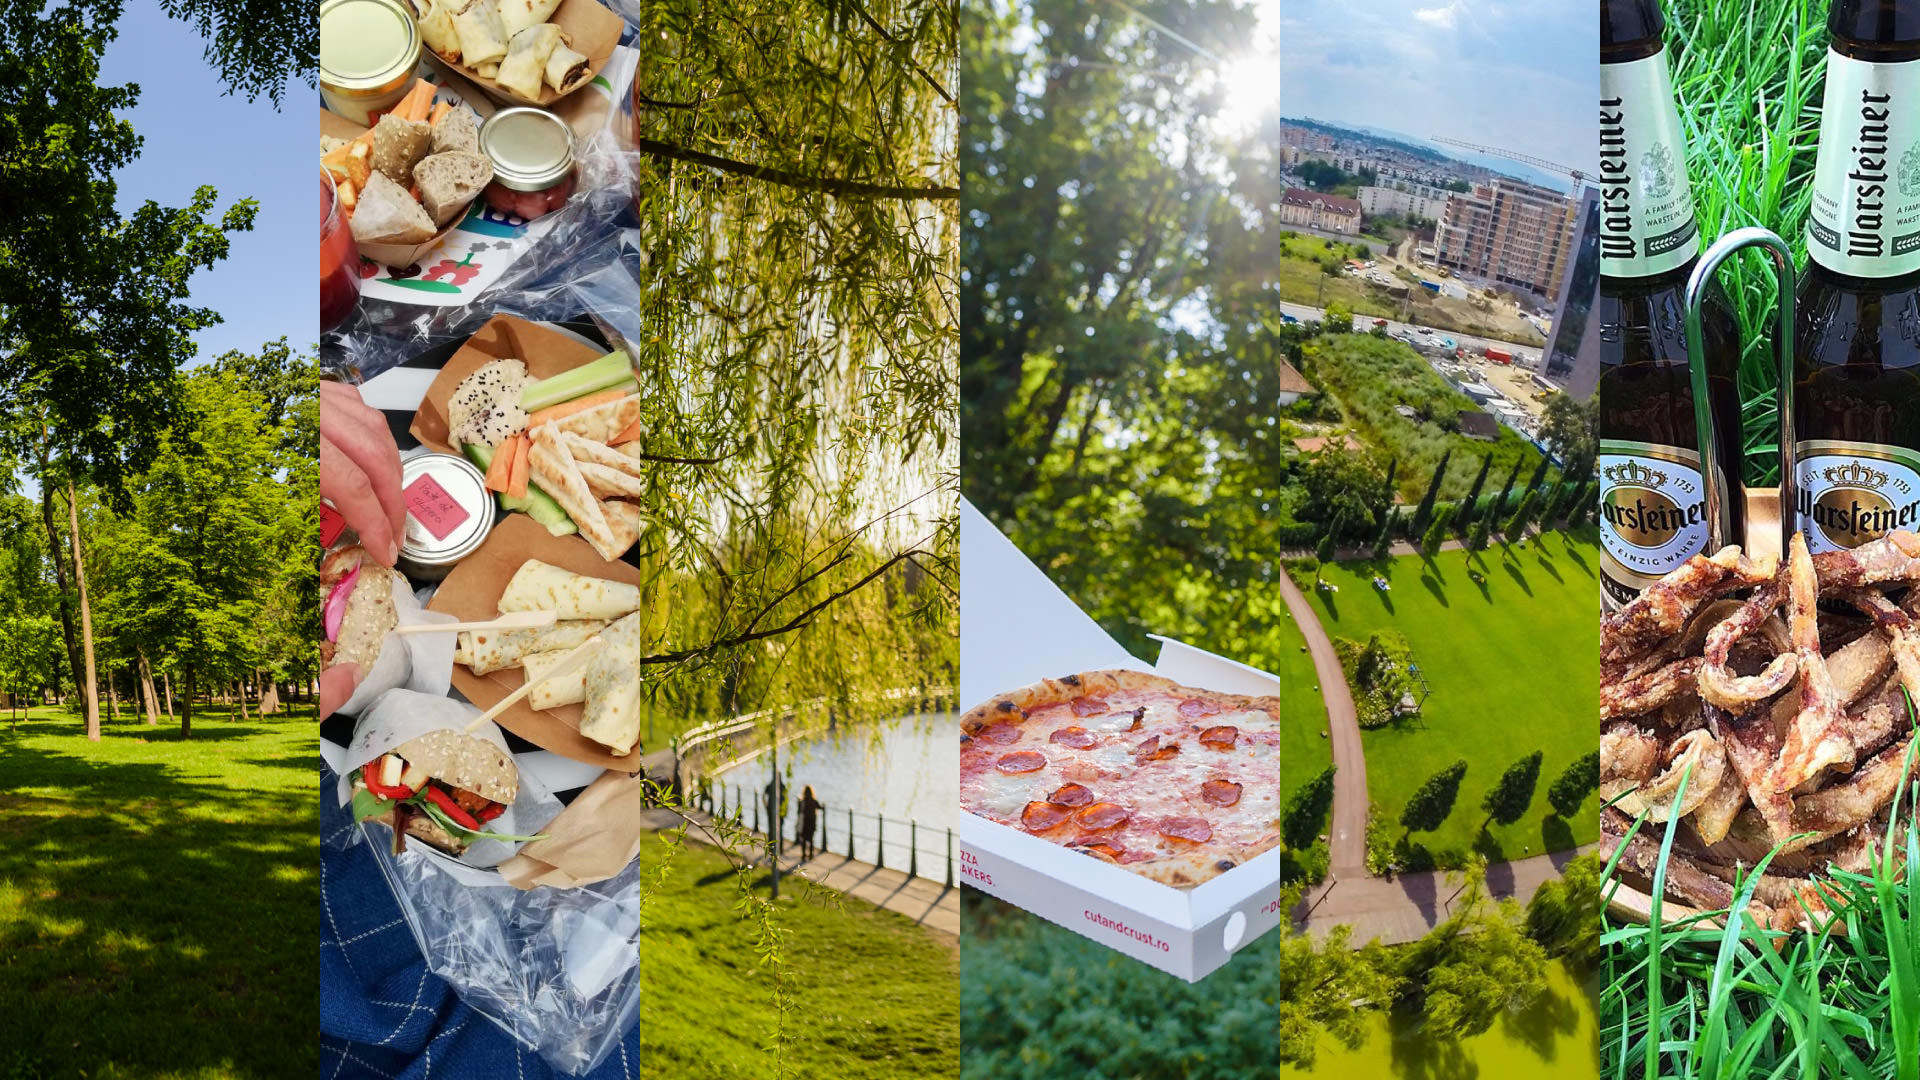 Picnic in the city: locații din Cluj unde poți organiza un mini-picnic cu preparate de la restaurantele locale